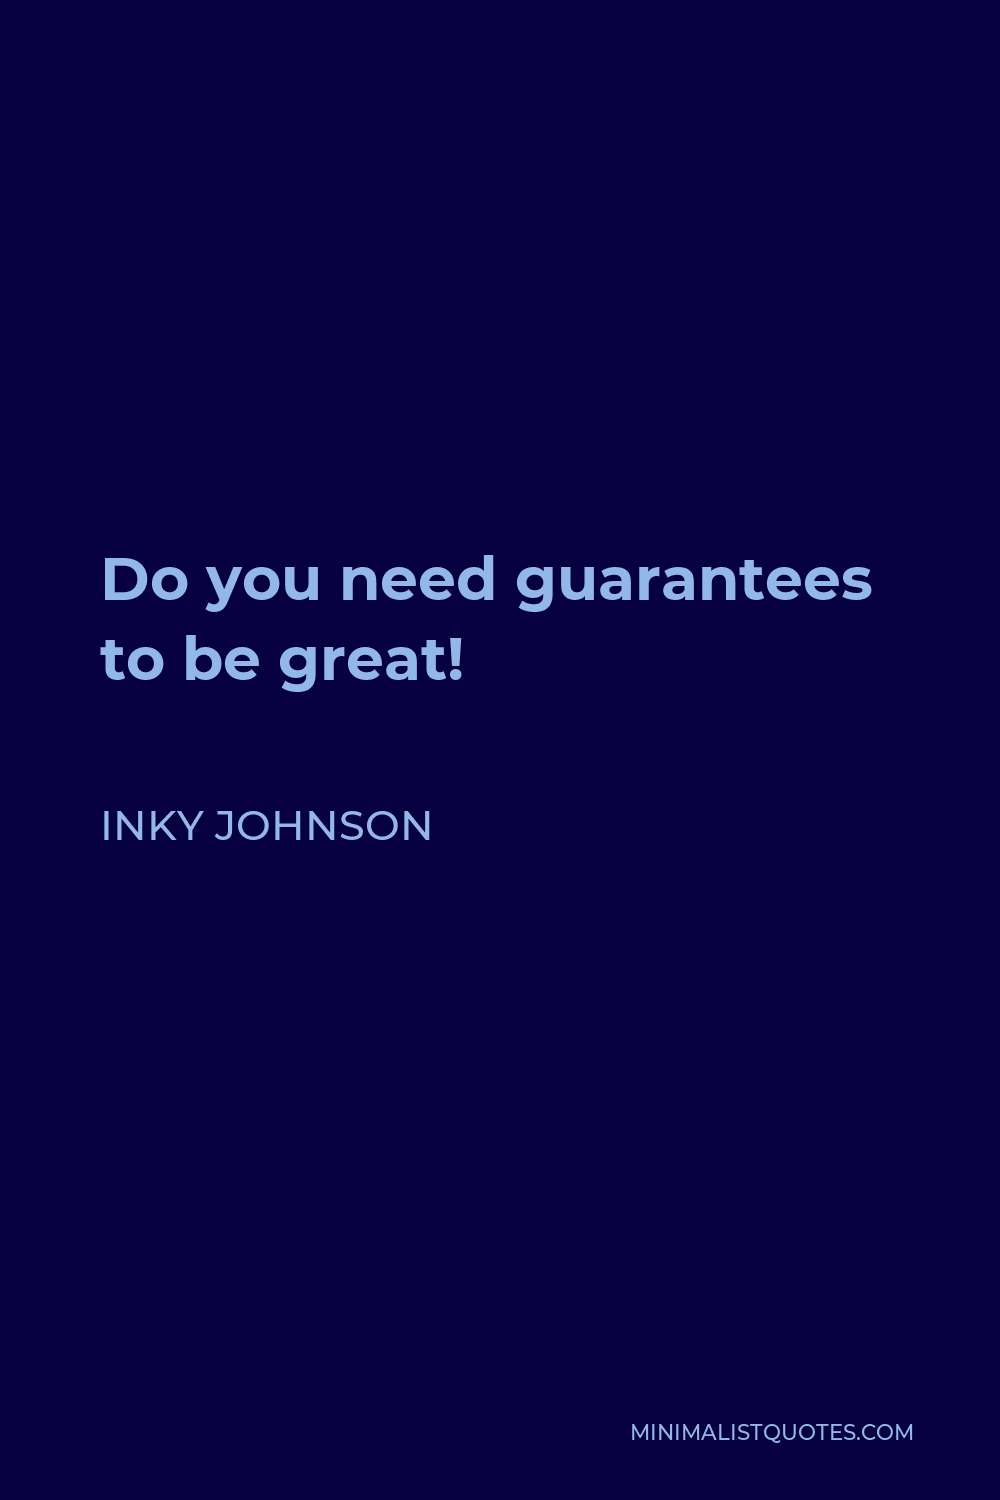 Inky Johnson Quote - Do you need guarantees to be great!